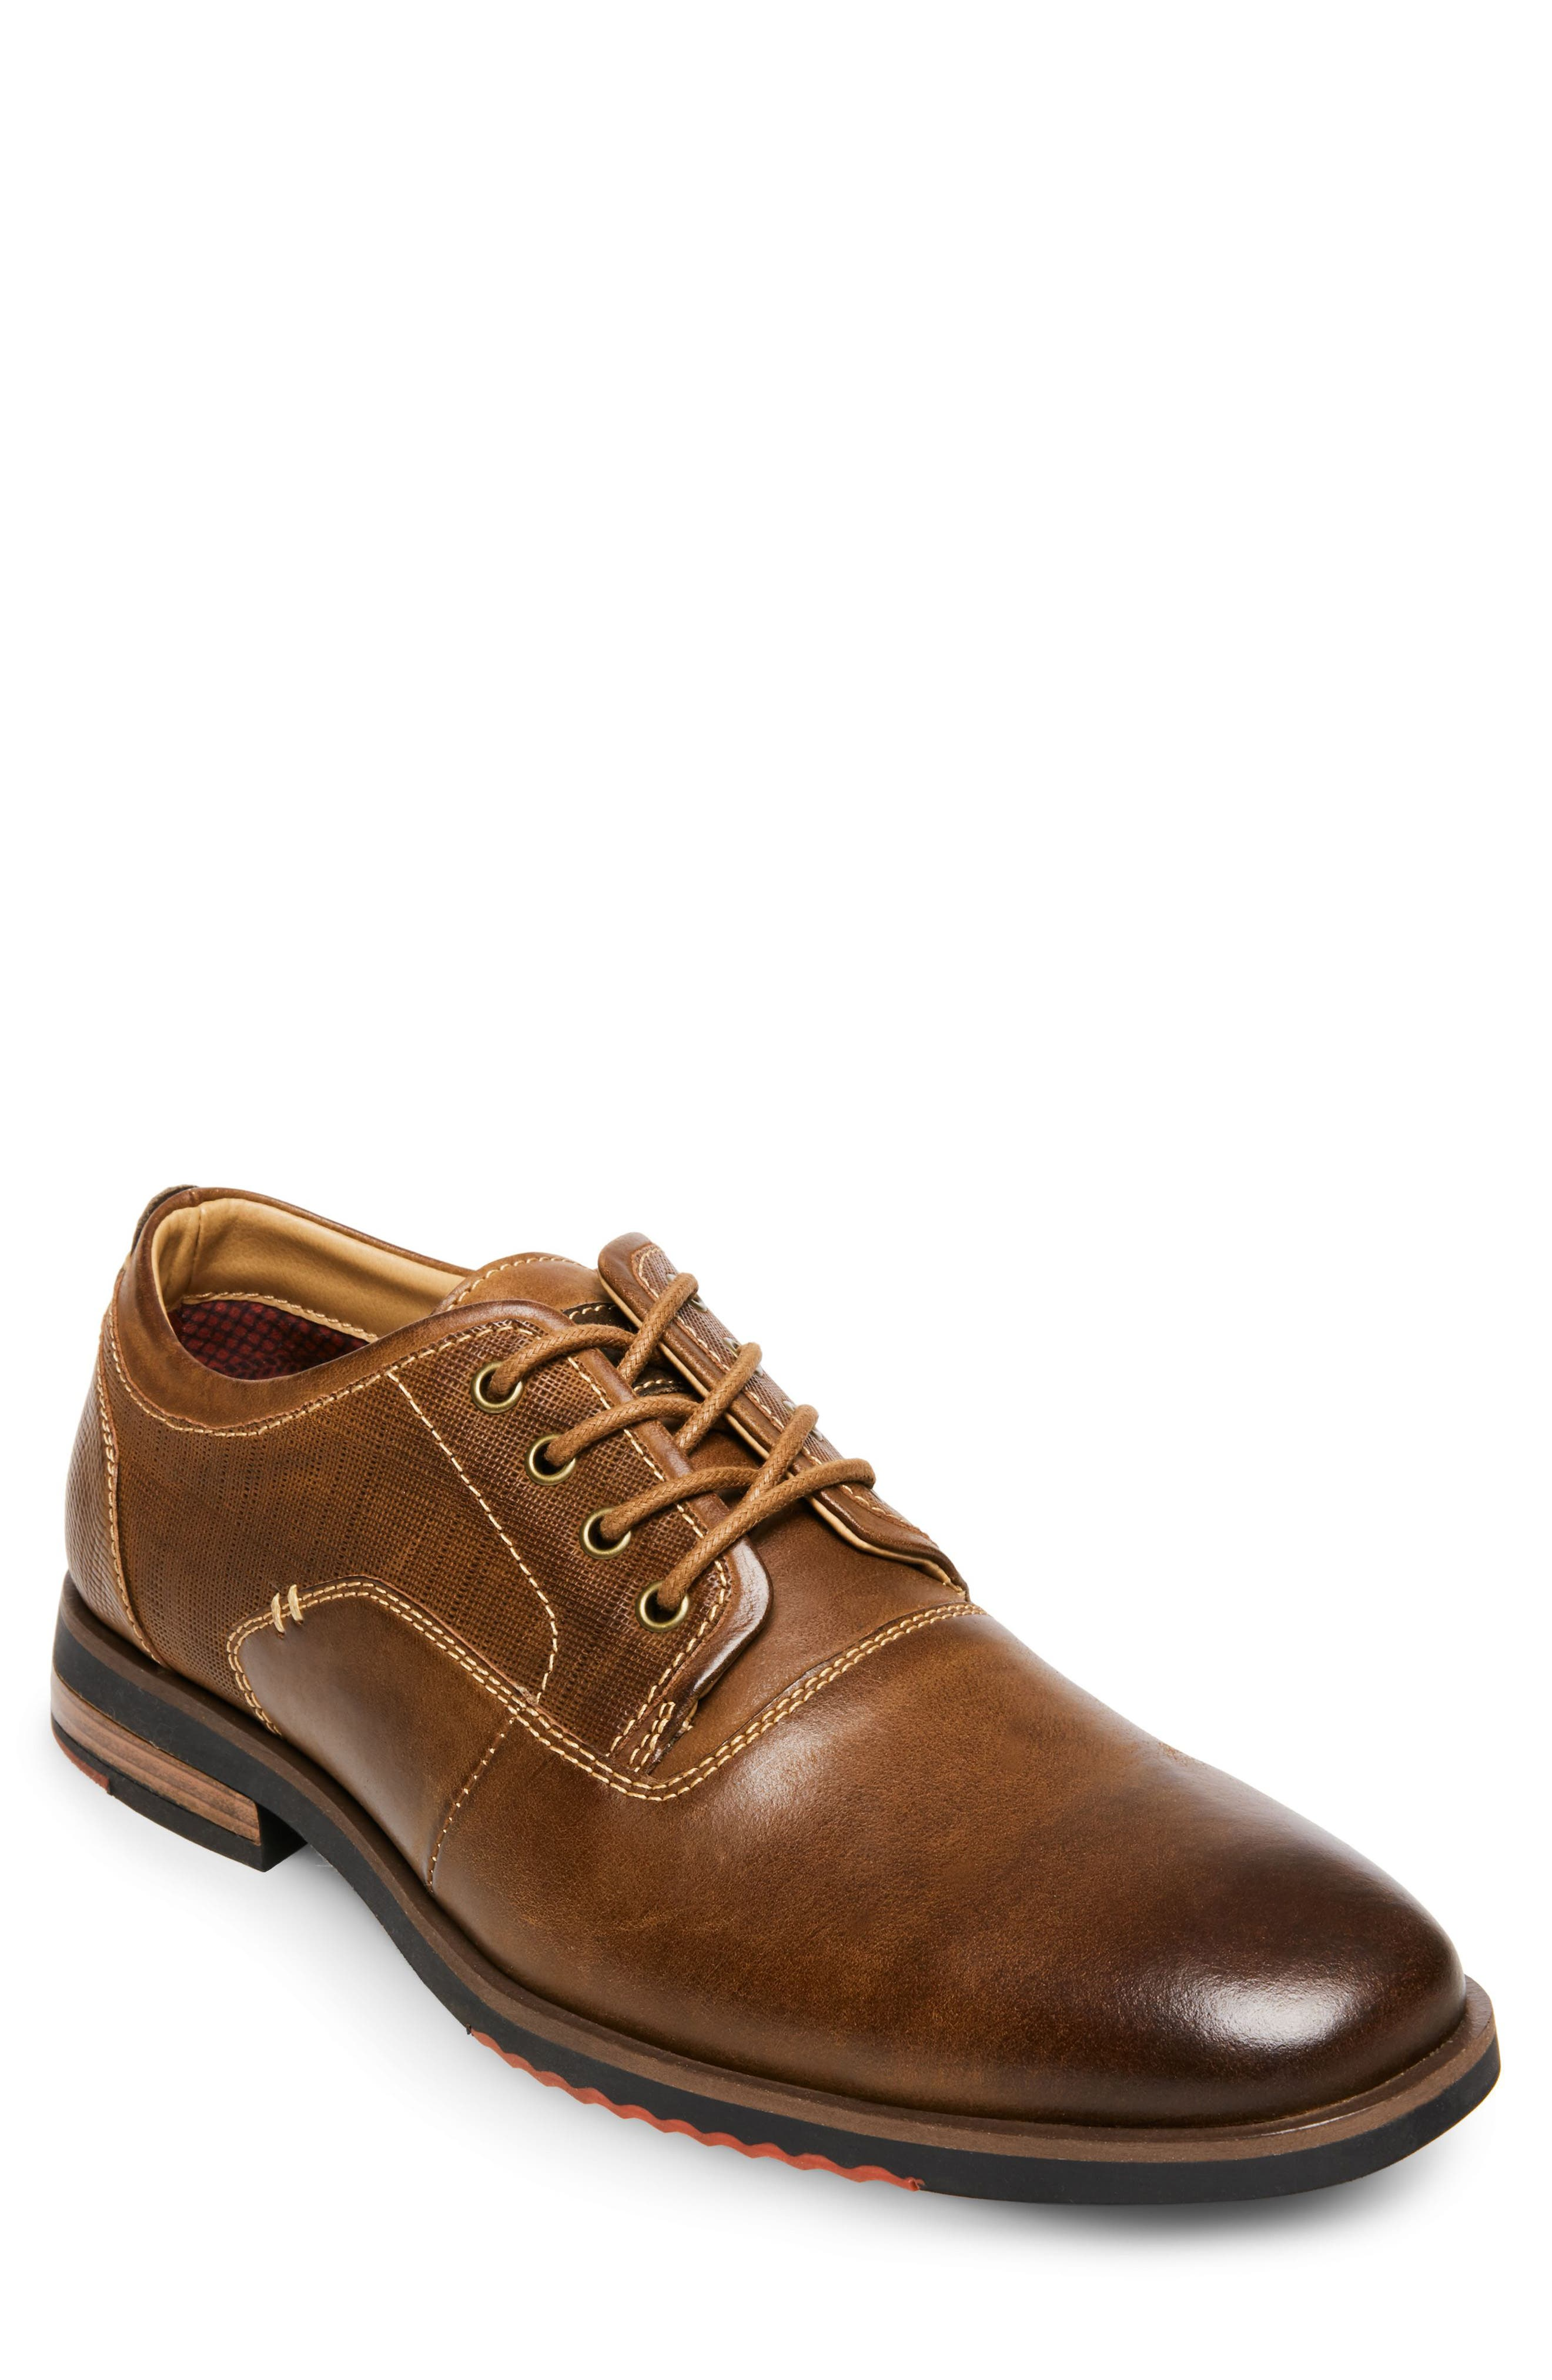 Mallet Textured Derby,                         Main,                         color, Dark Tan Leather